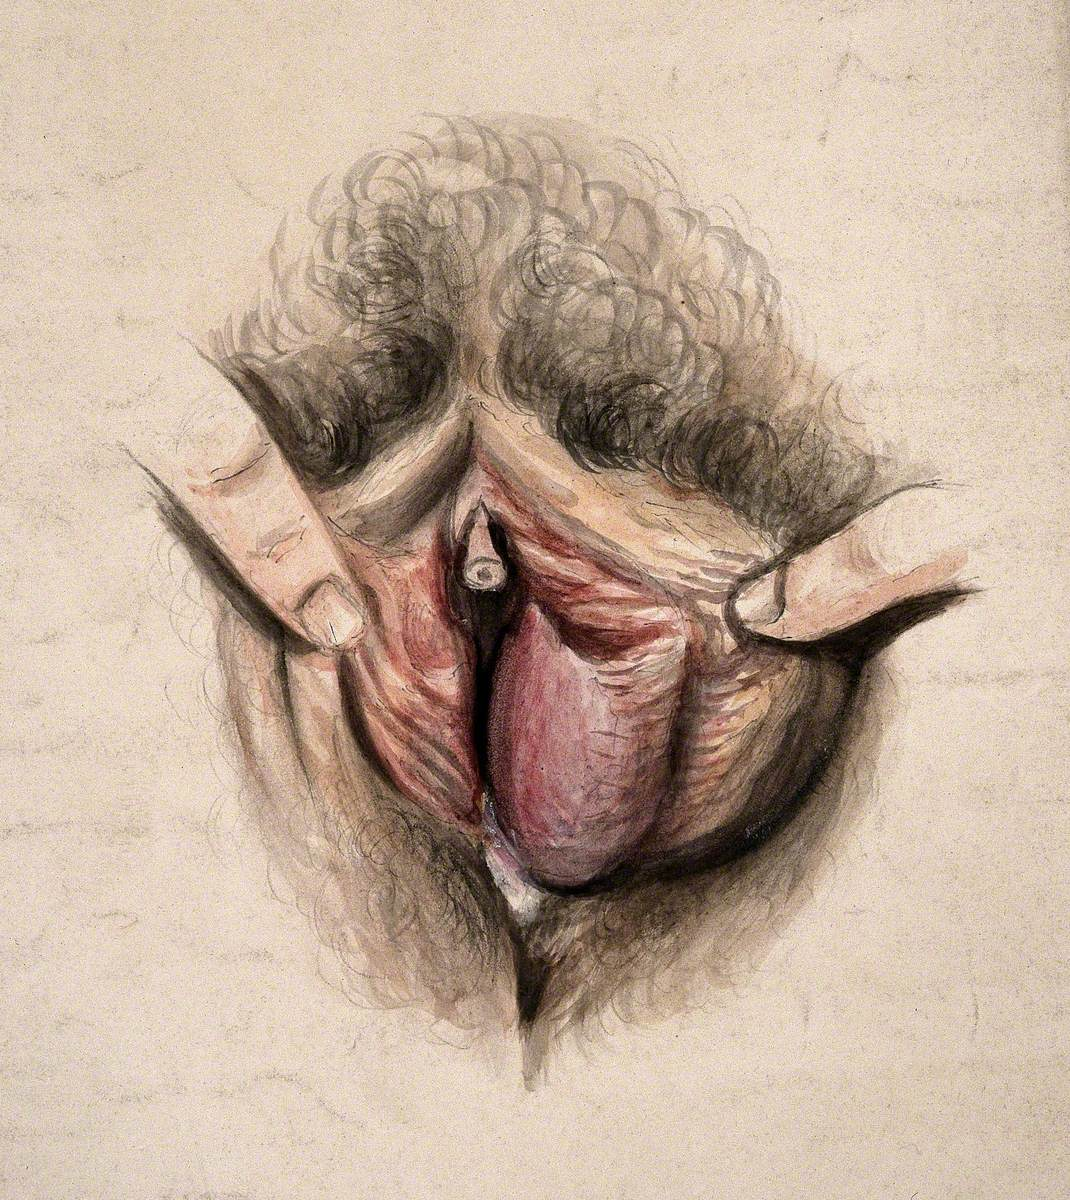 Female Genitalia Held Open by Two Fingers to Show an Area of Diseased Tissue